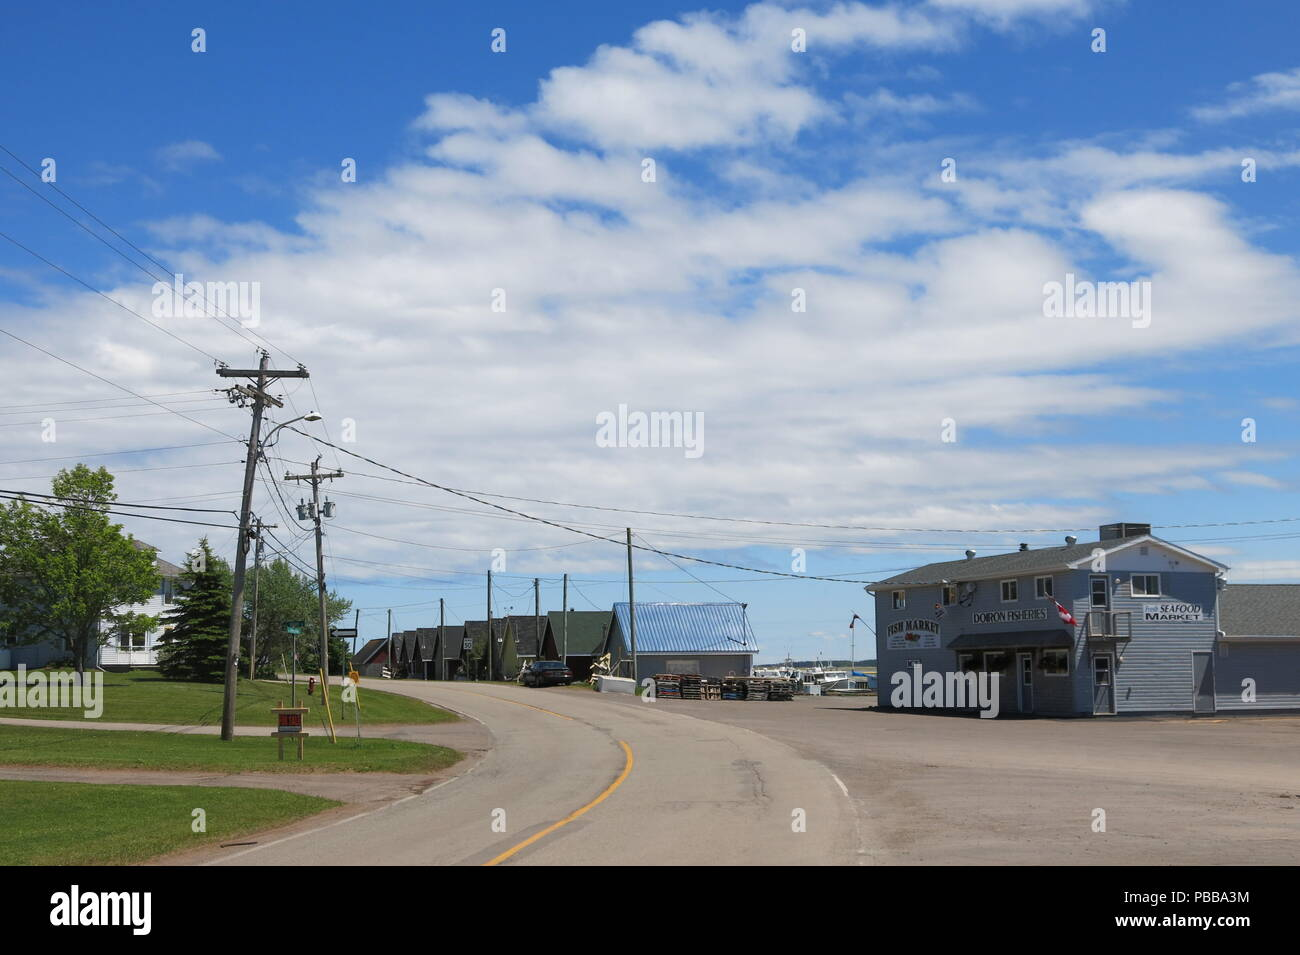 A view along Harbourview Drive towards Doiron Fisheries, with boats in the background at North Rustico, a thriving fish market business on PEI - Stock Image